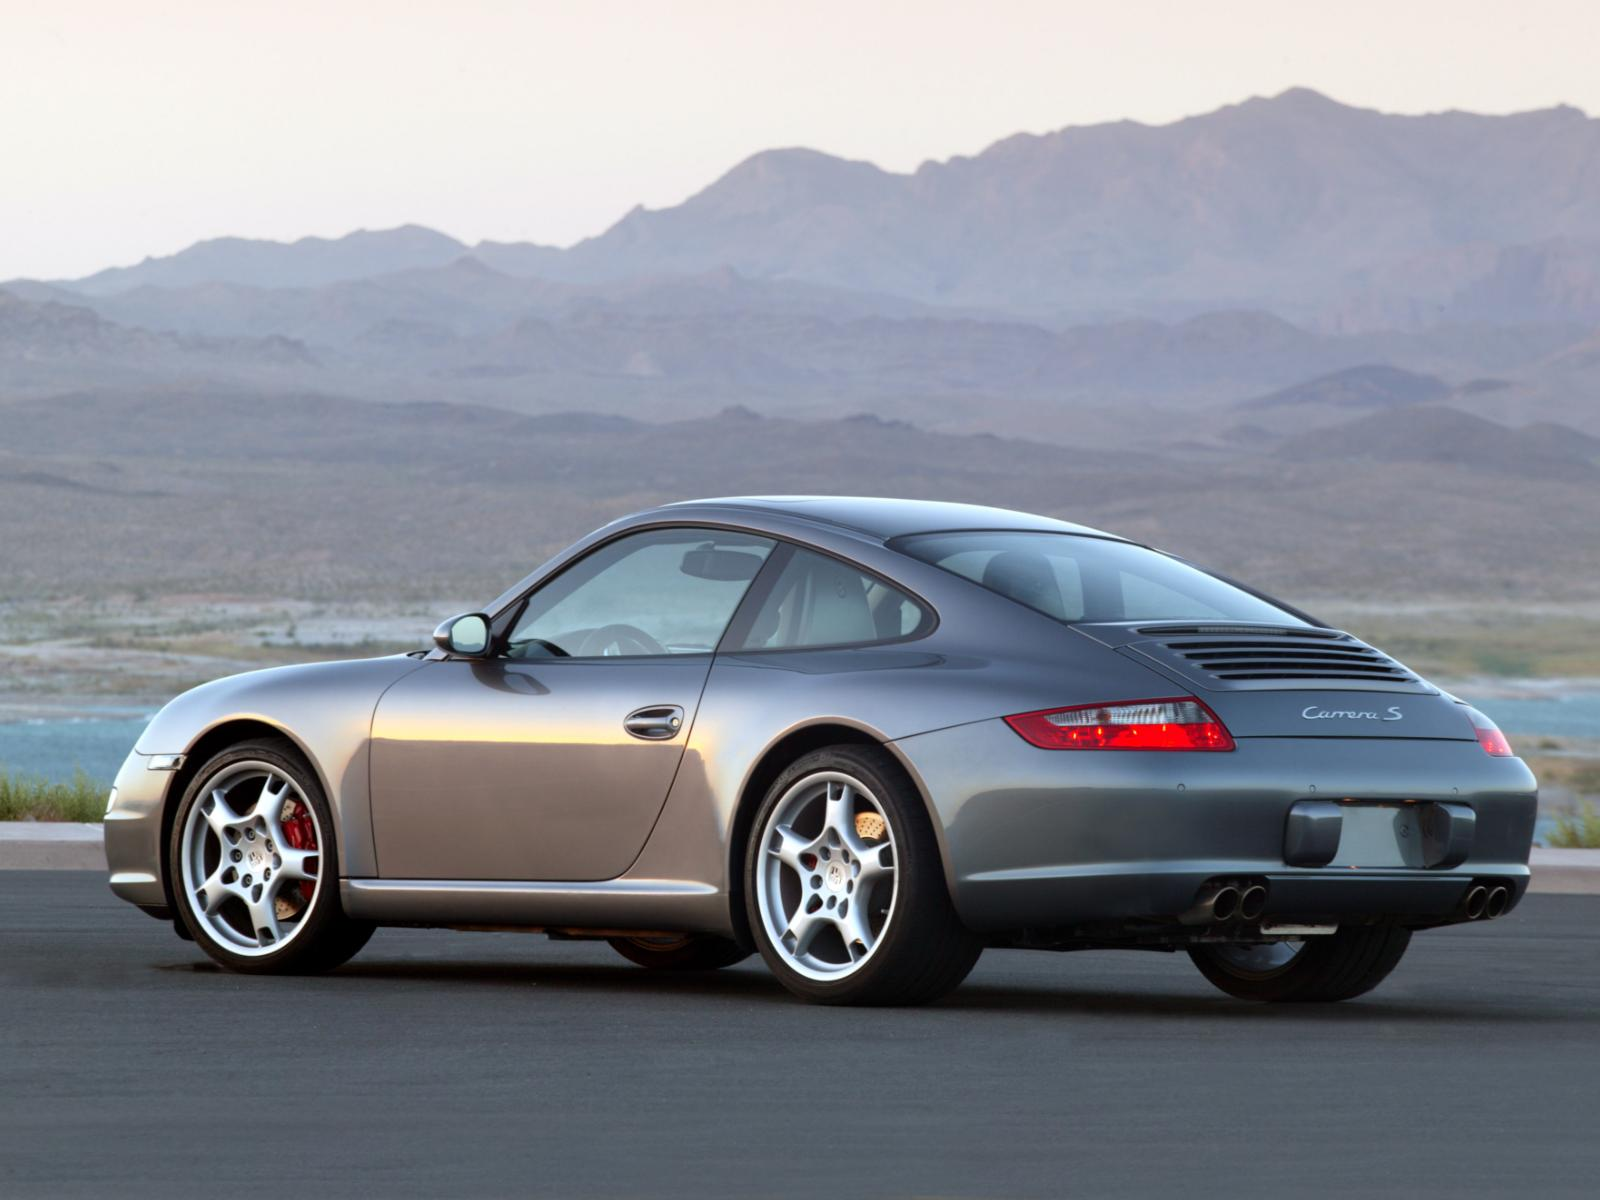 porsche 997 911 carrera s picture 15434 porsche photo. Black Bedroom Furniture Sets. Home Design Ideas